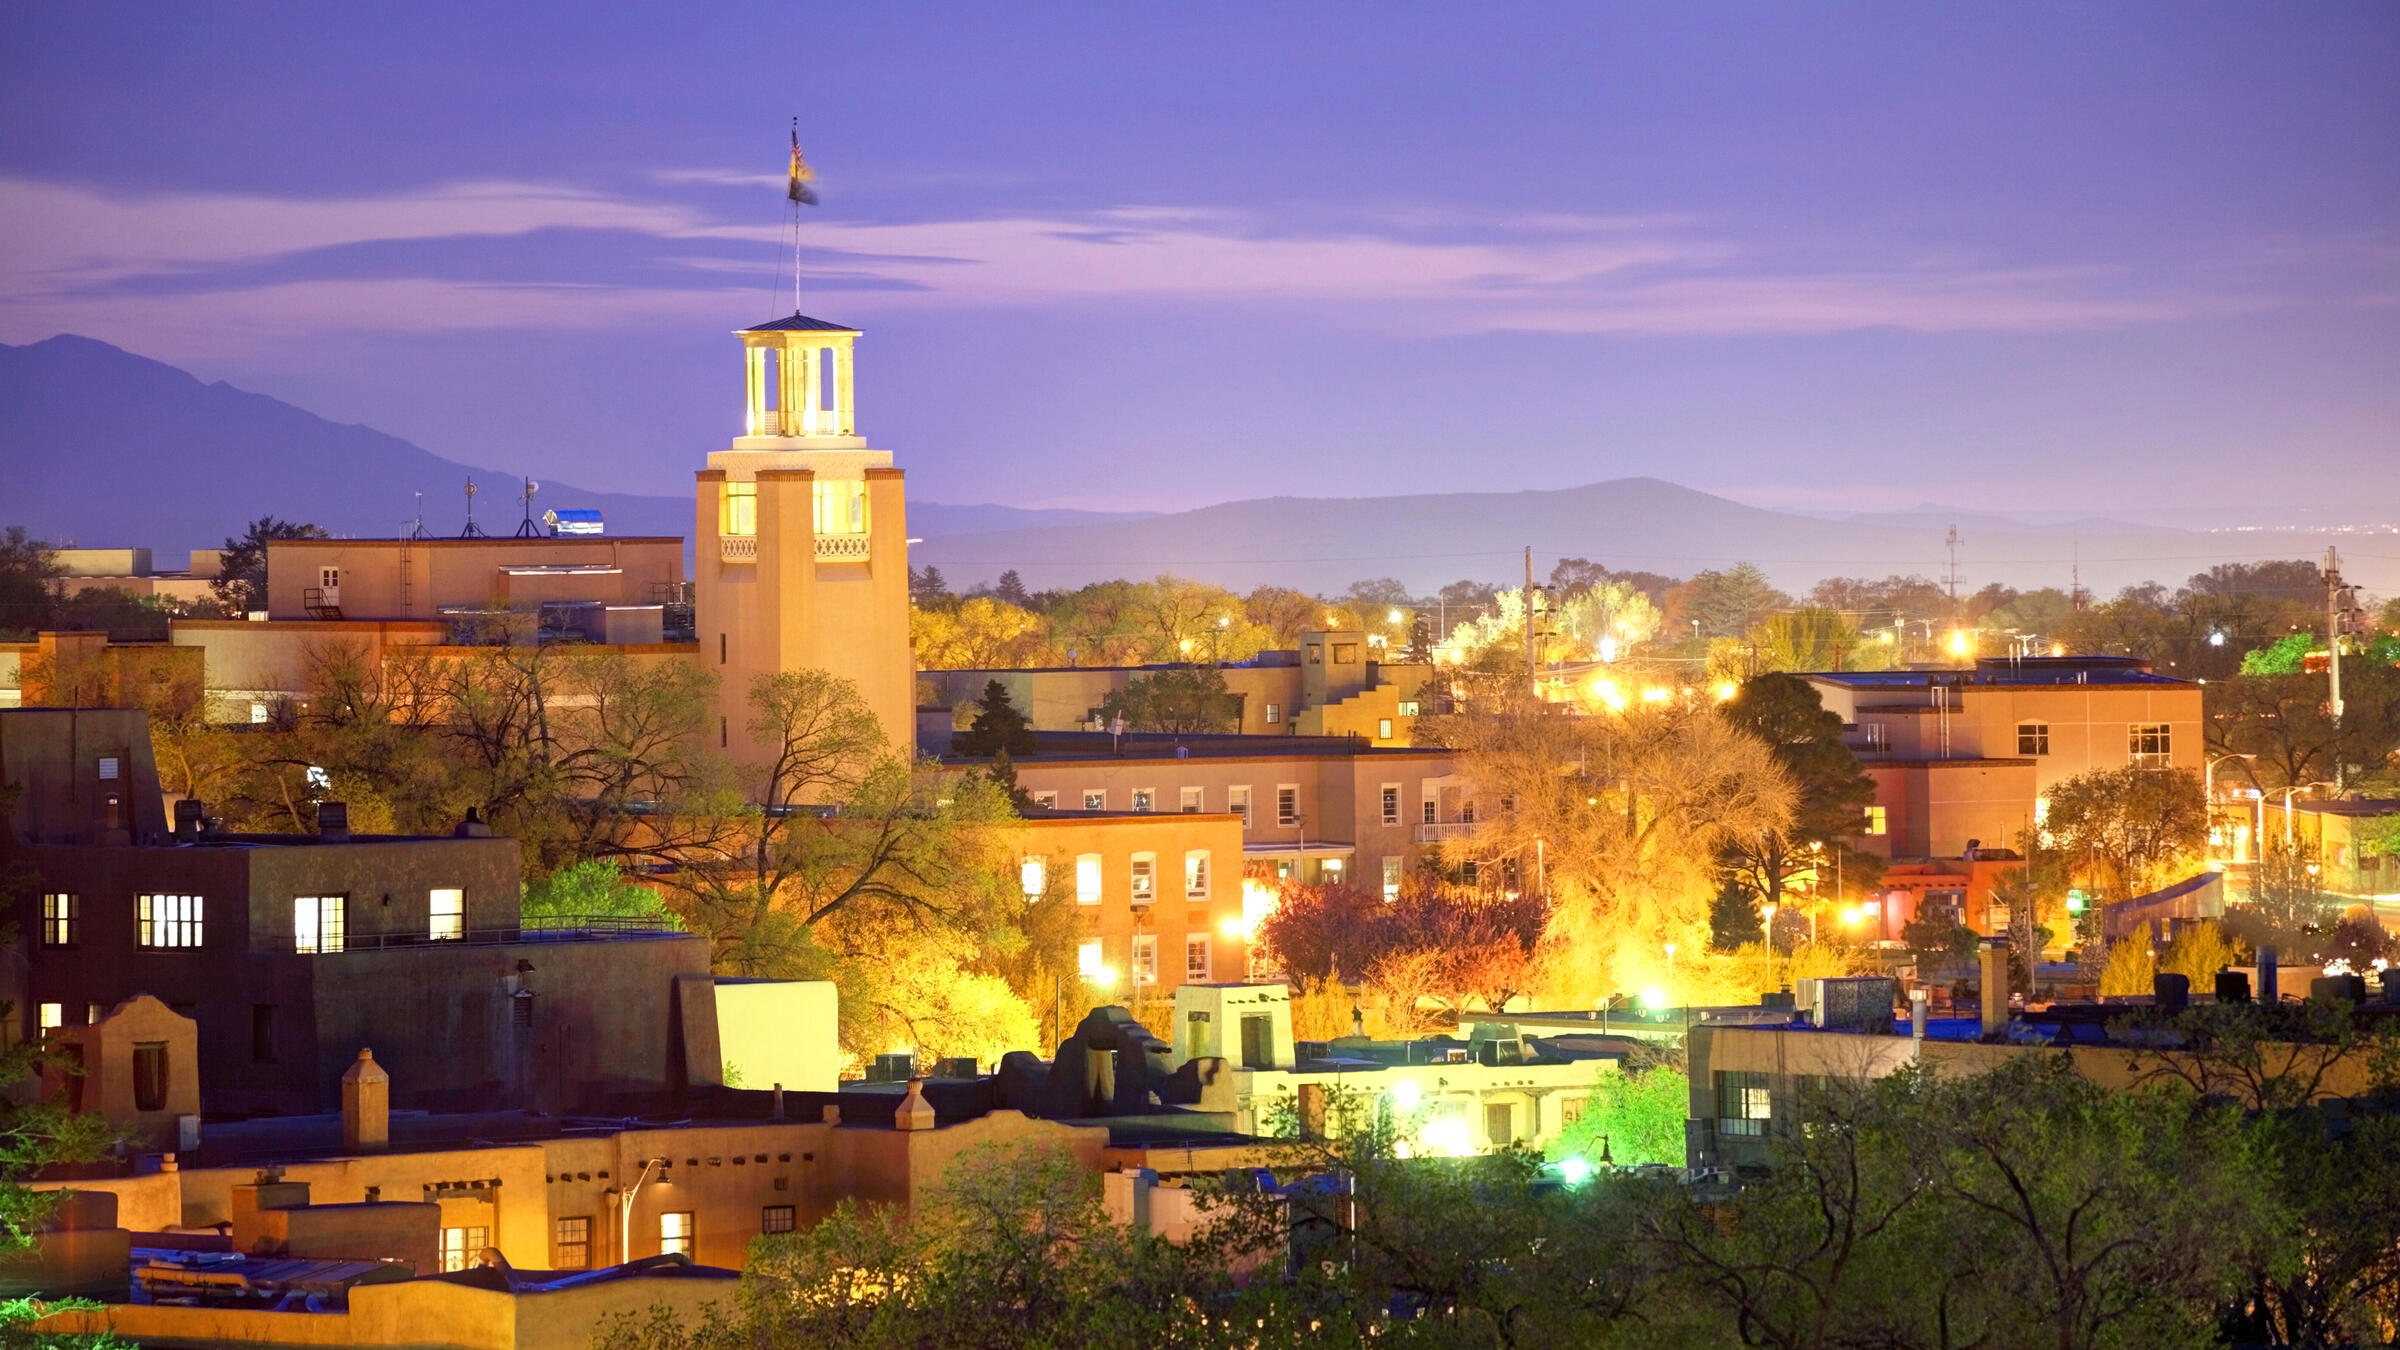 Santa Fe's cityscape is dotted by mountains and other natural wonders. Denis Tangney Jr/iStock